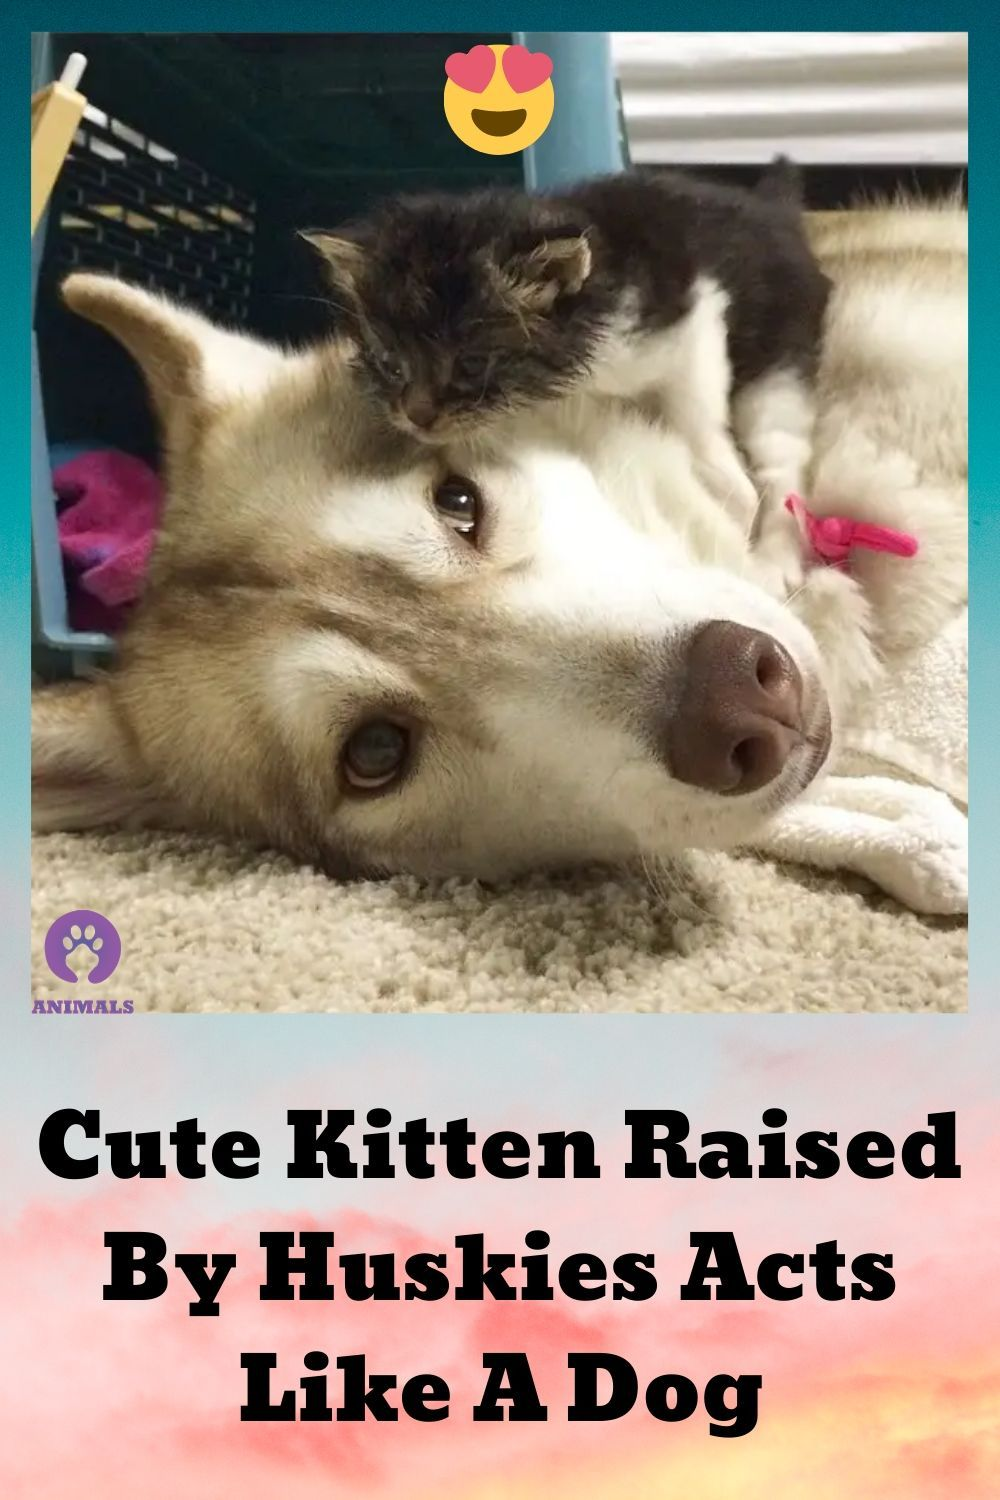 Cute Kitten Raised By Huskies Acts Like A Dog In 2020 Animals Funny Animals Dogs